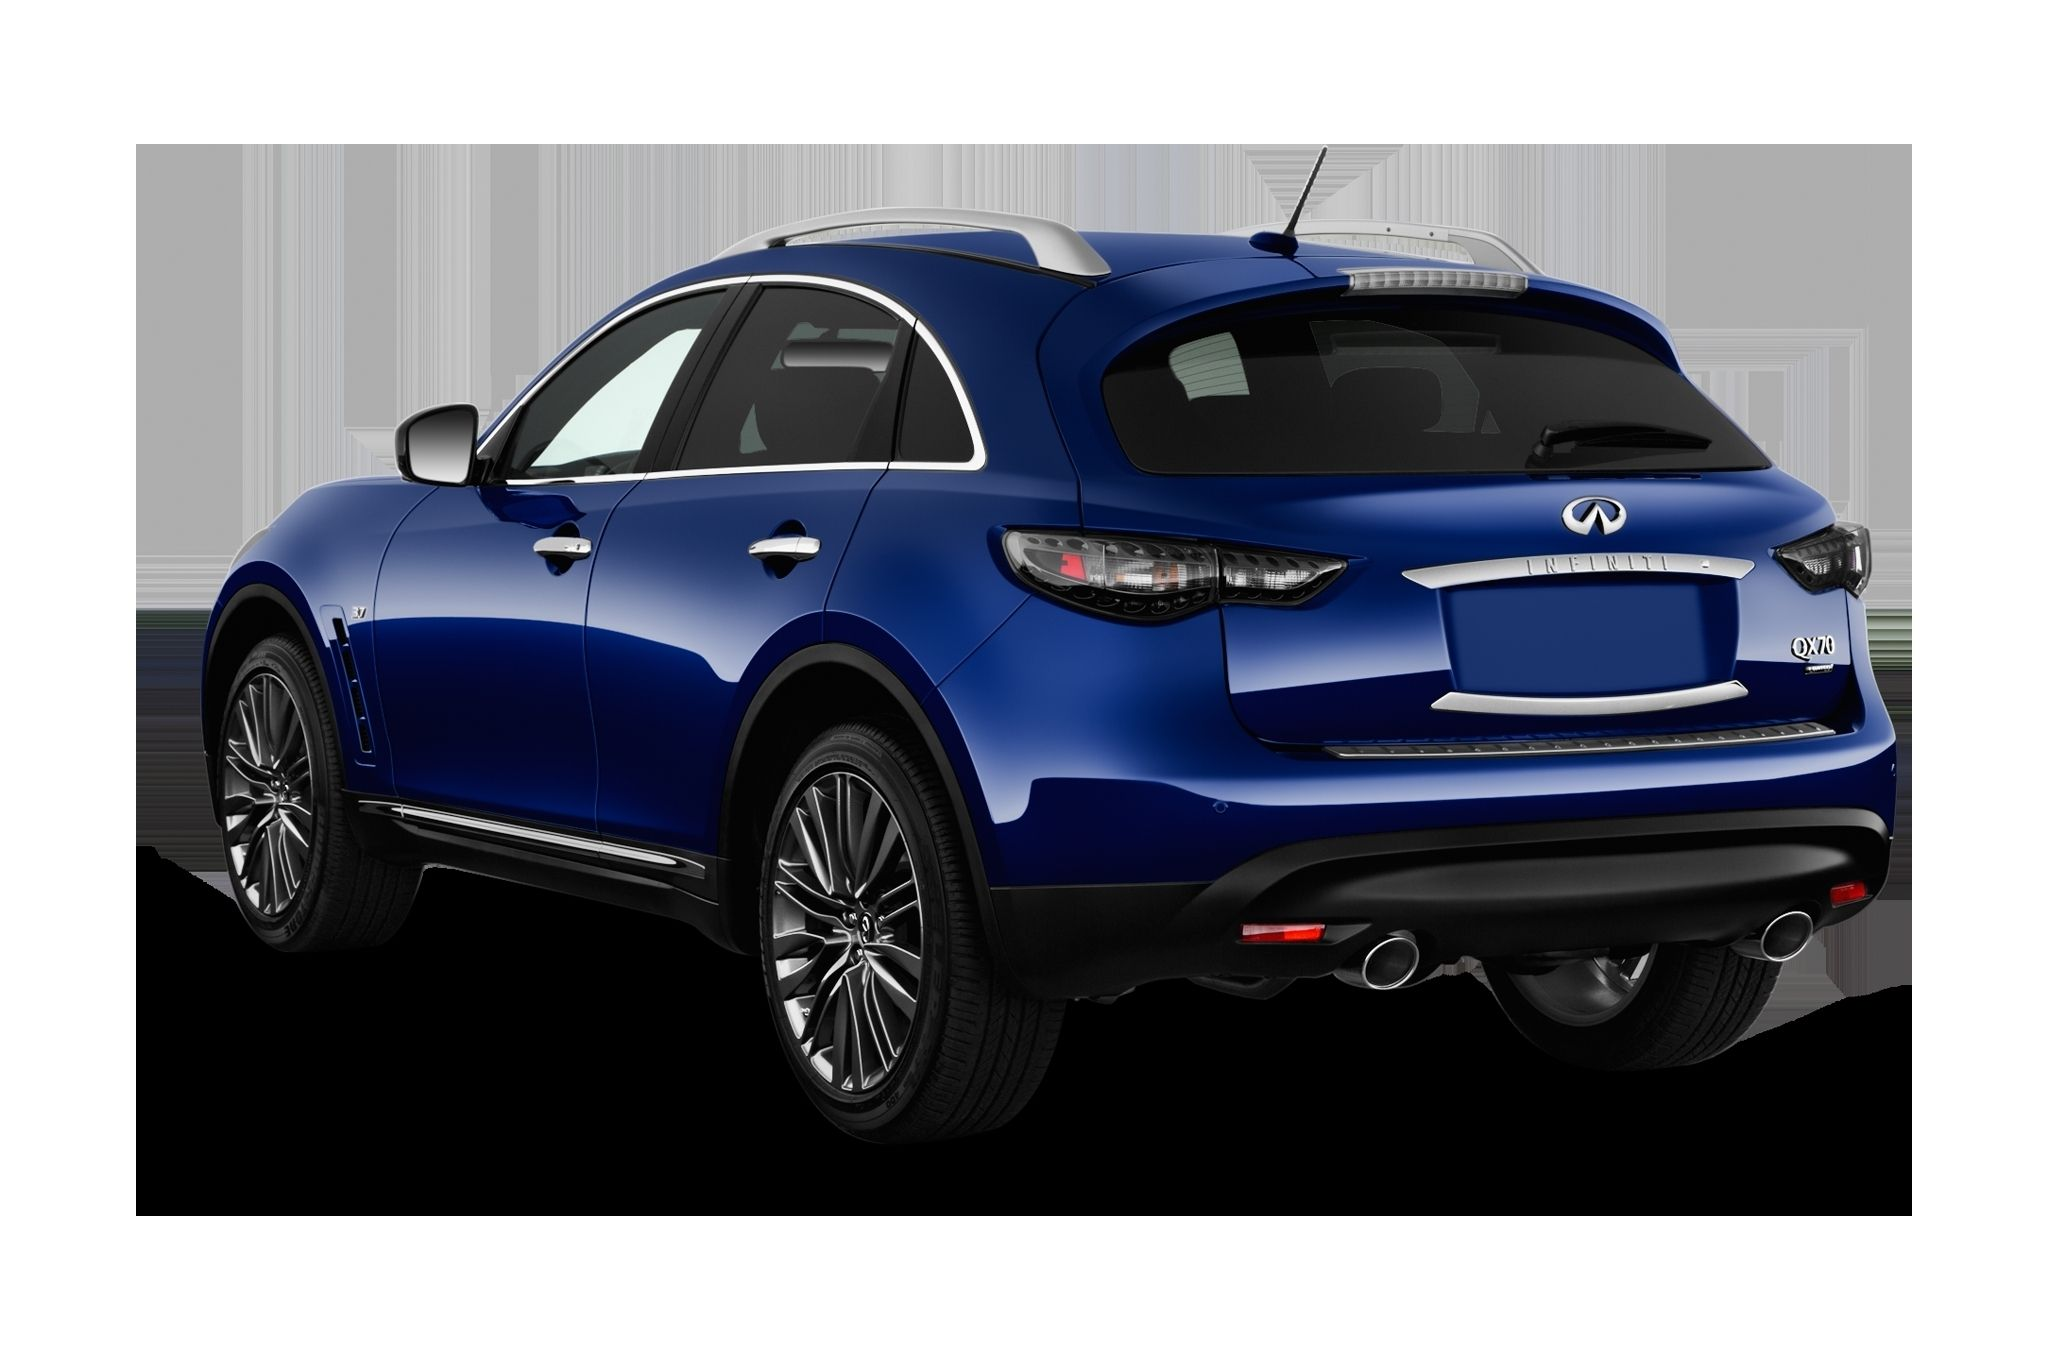 2019 Infiniti Suv Qx70 Exterior and Interior Review Suv